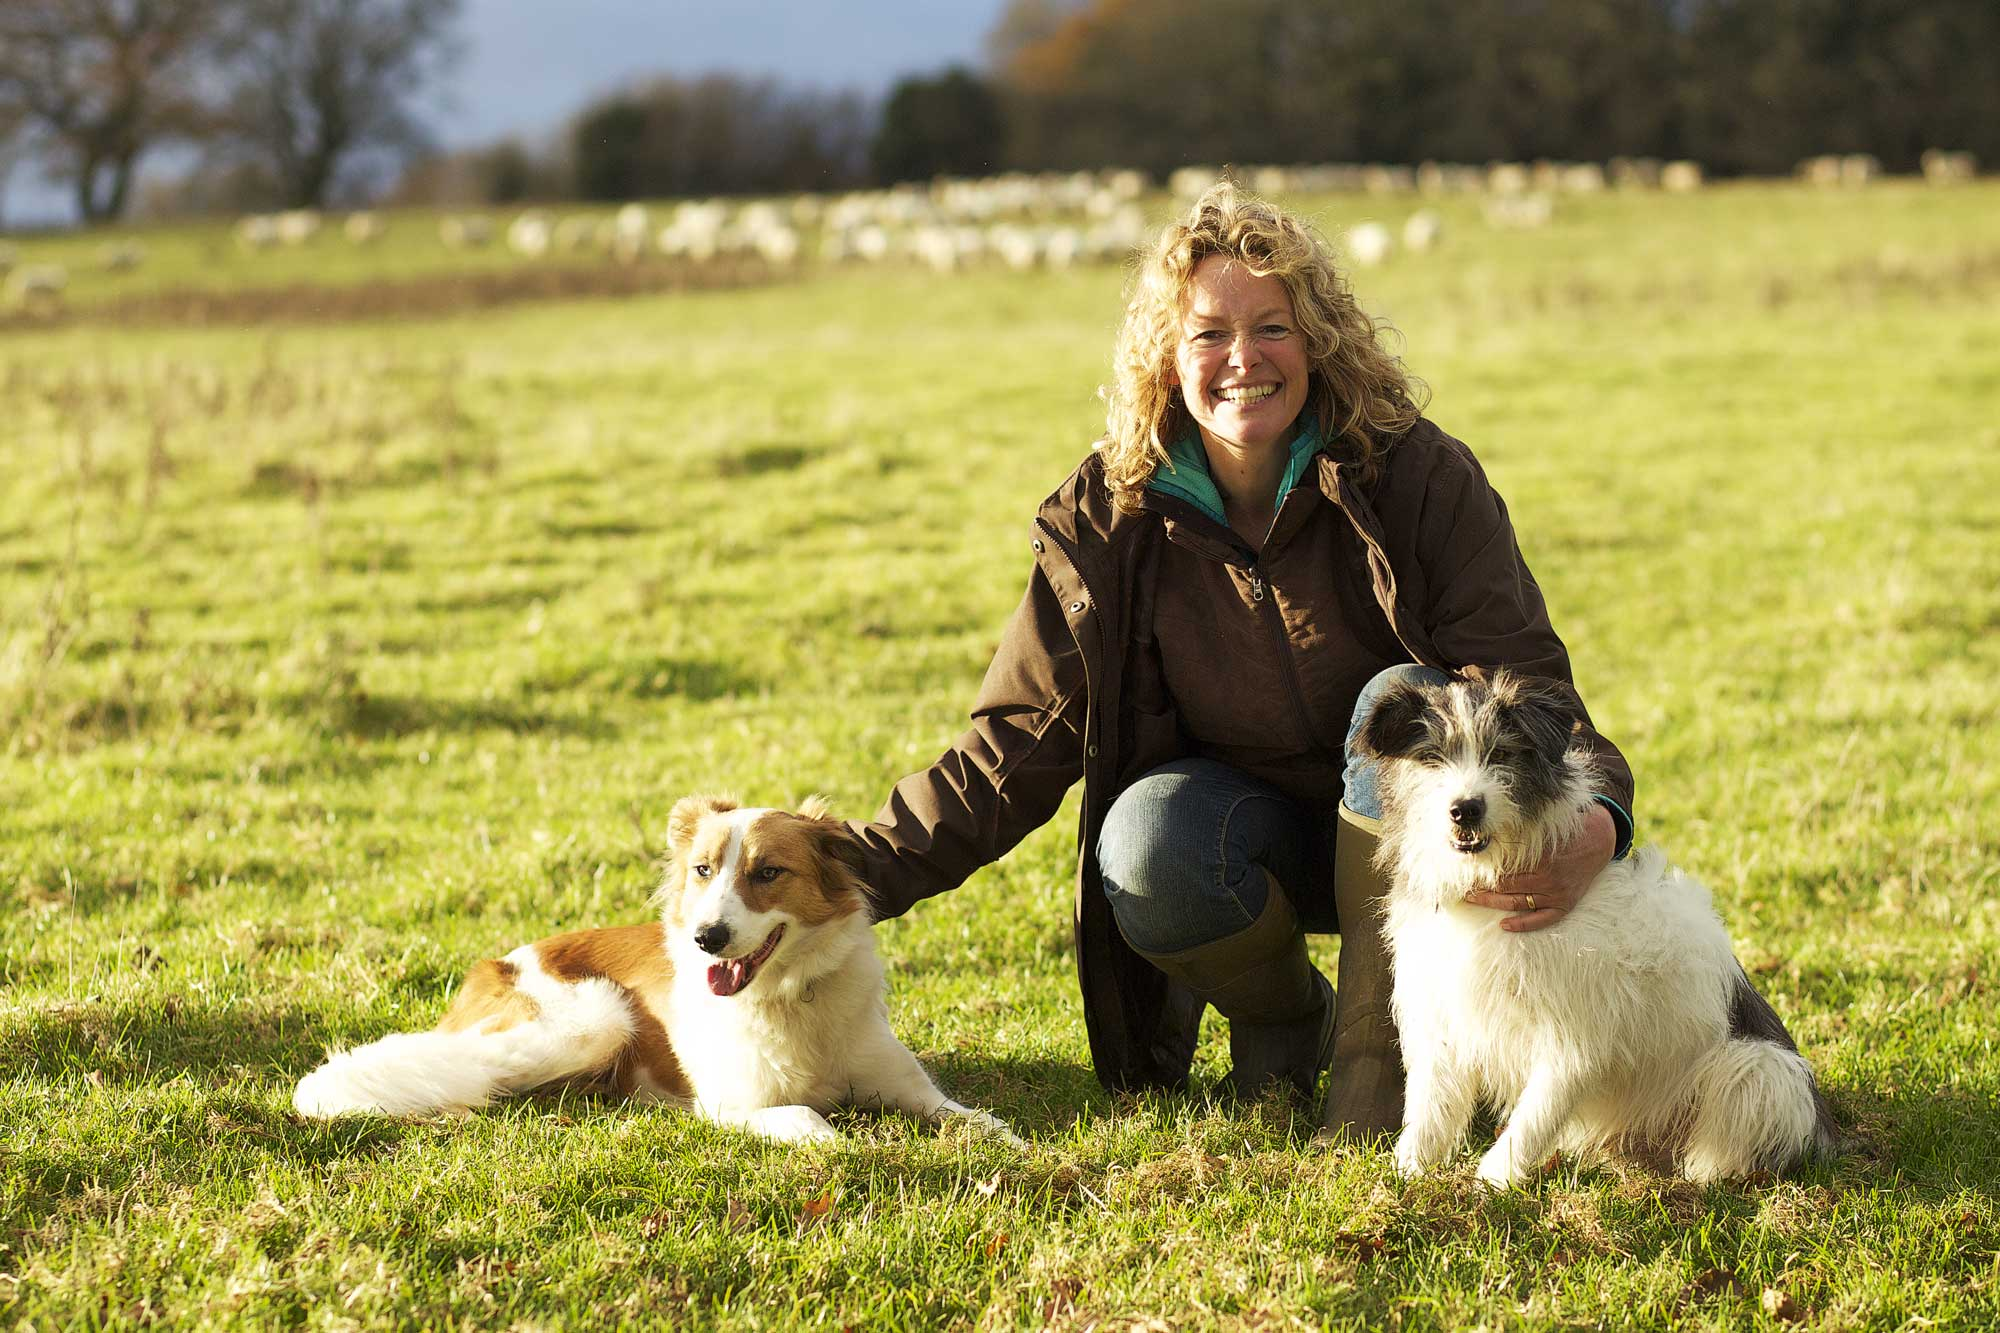 RT @sawdays: Kate Humble tells us why dog-friendly breaks are so special. http://t.co/GXGB98xVoS @katehumble http://t.co/cOTIkimylR